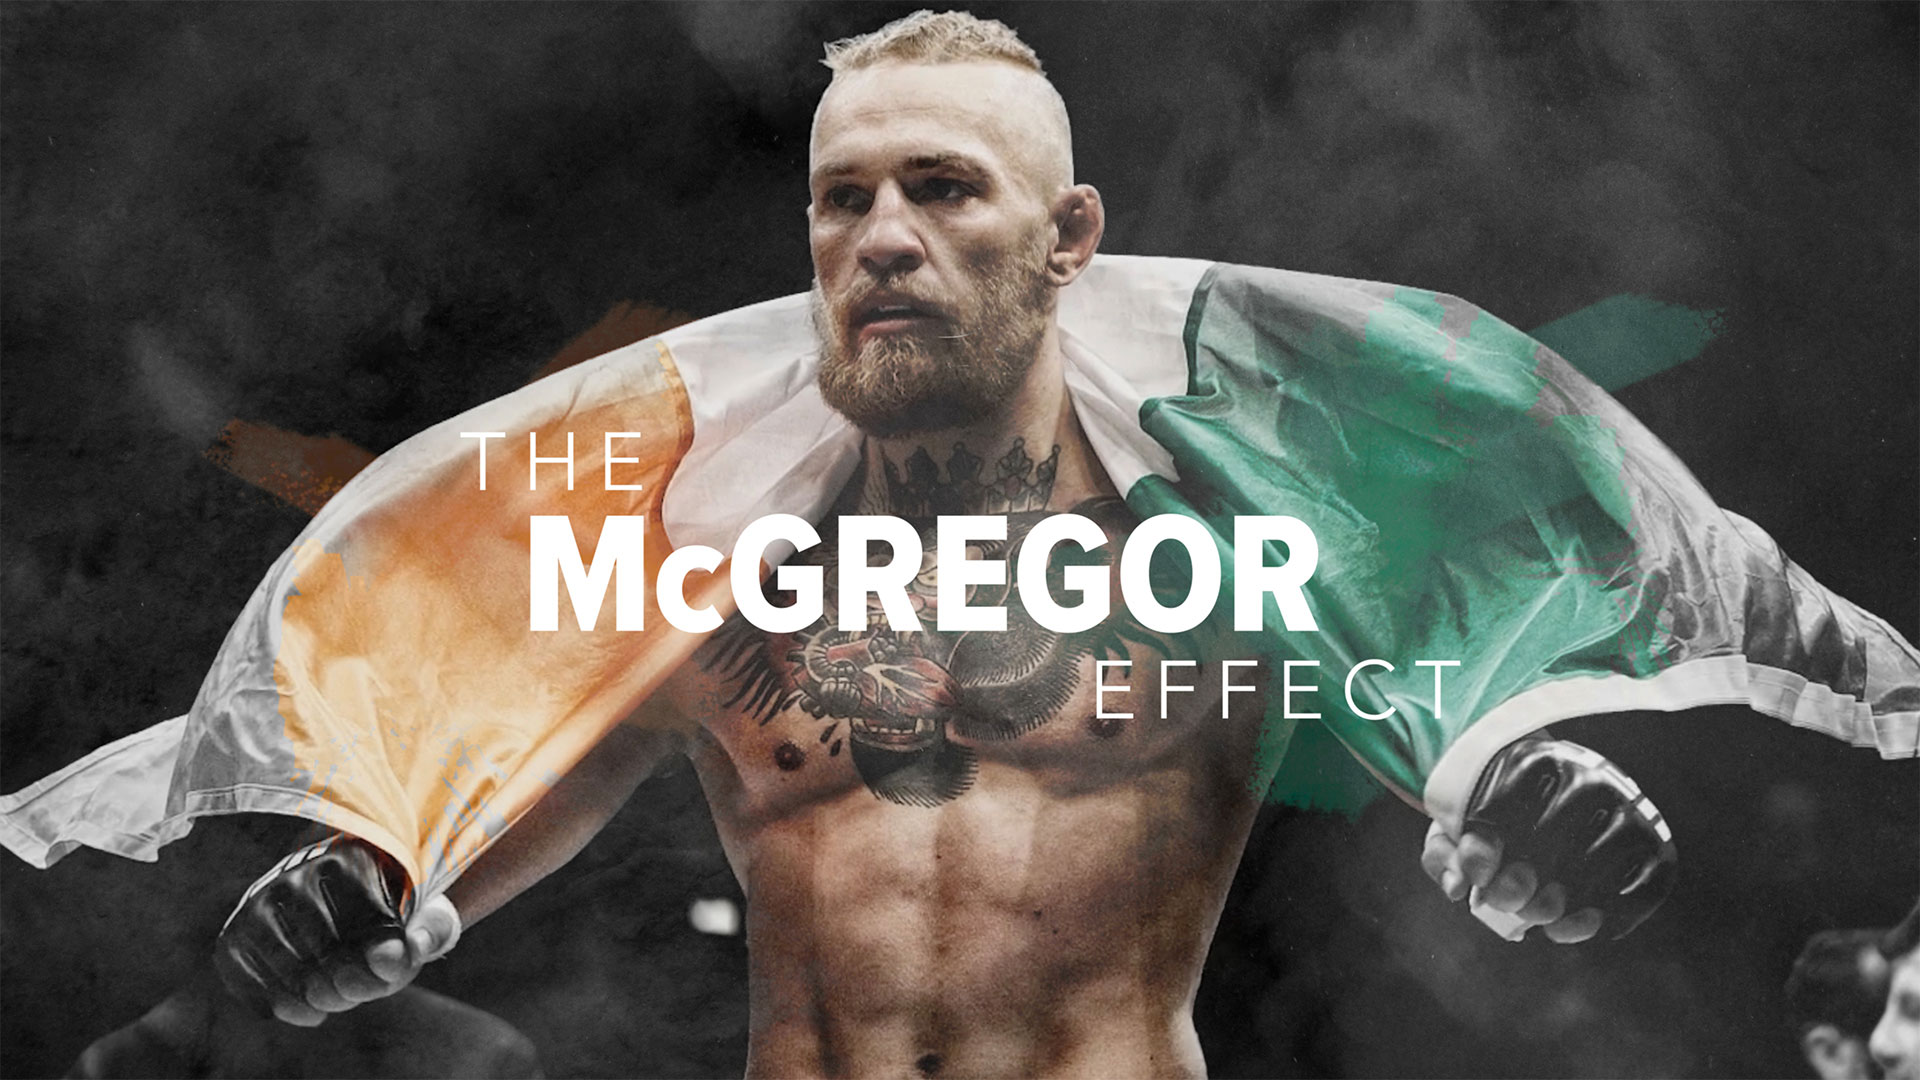 The Connor McGregor Effect